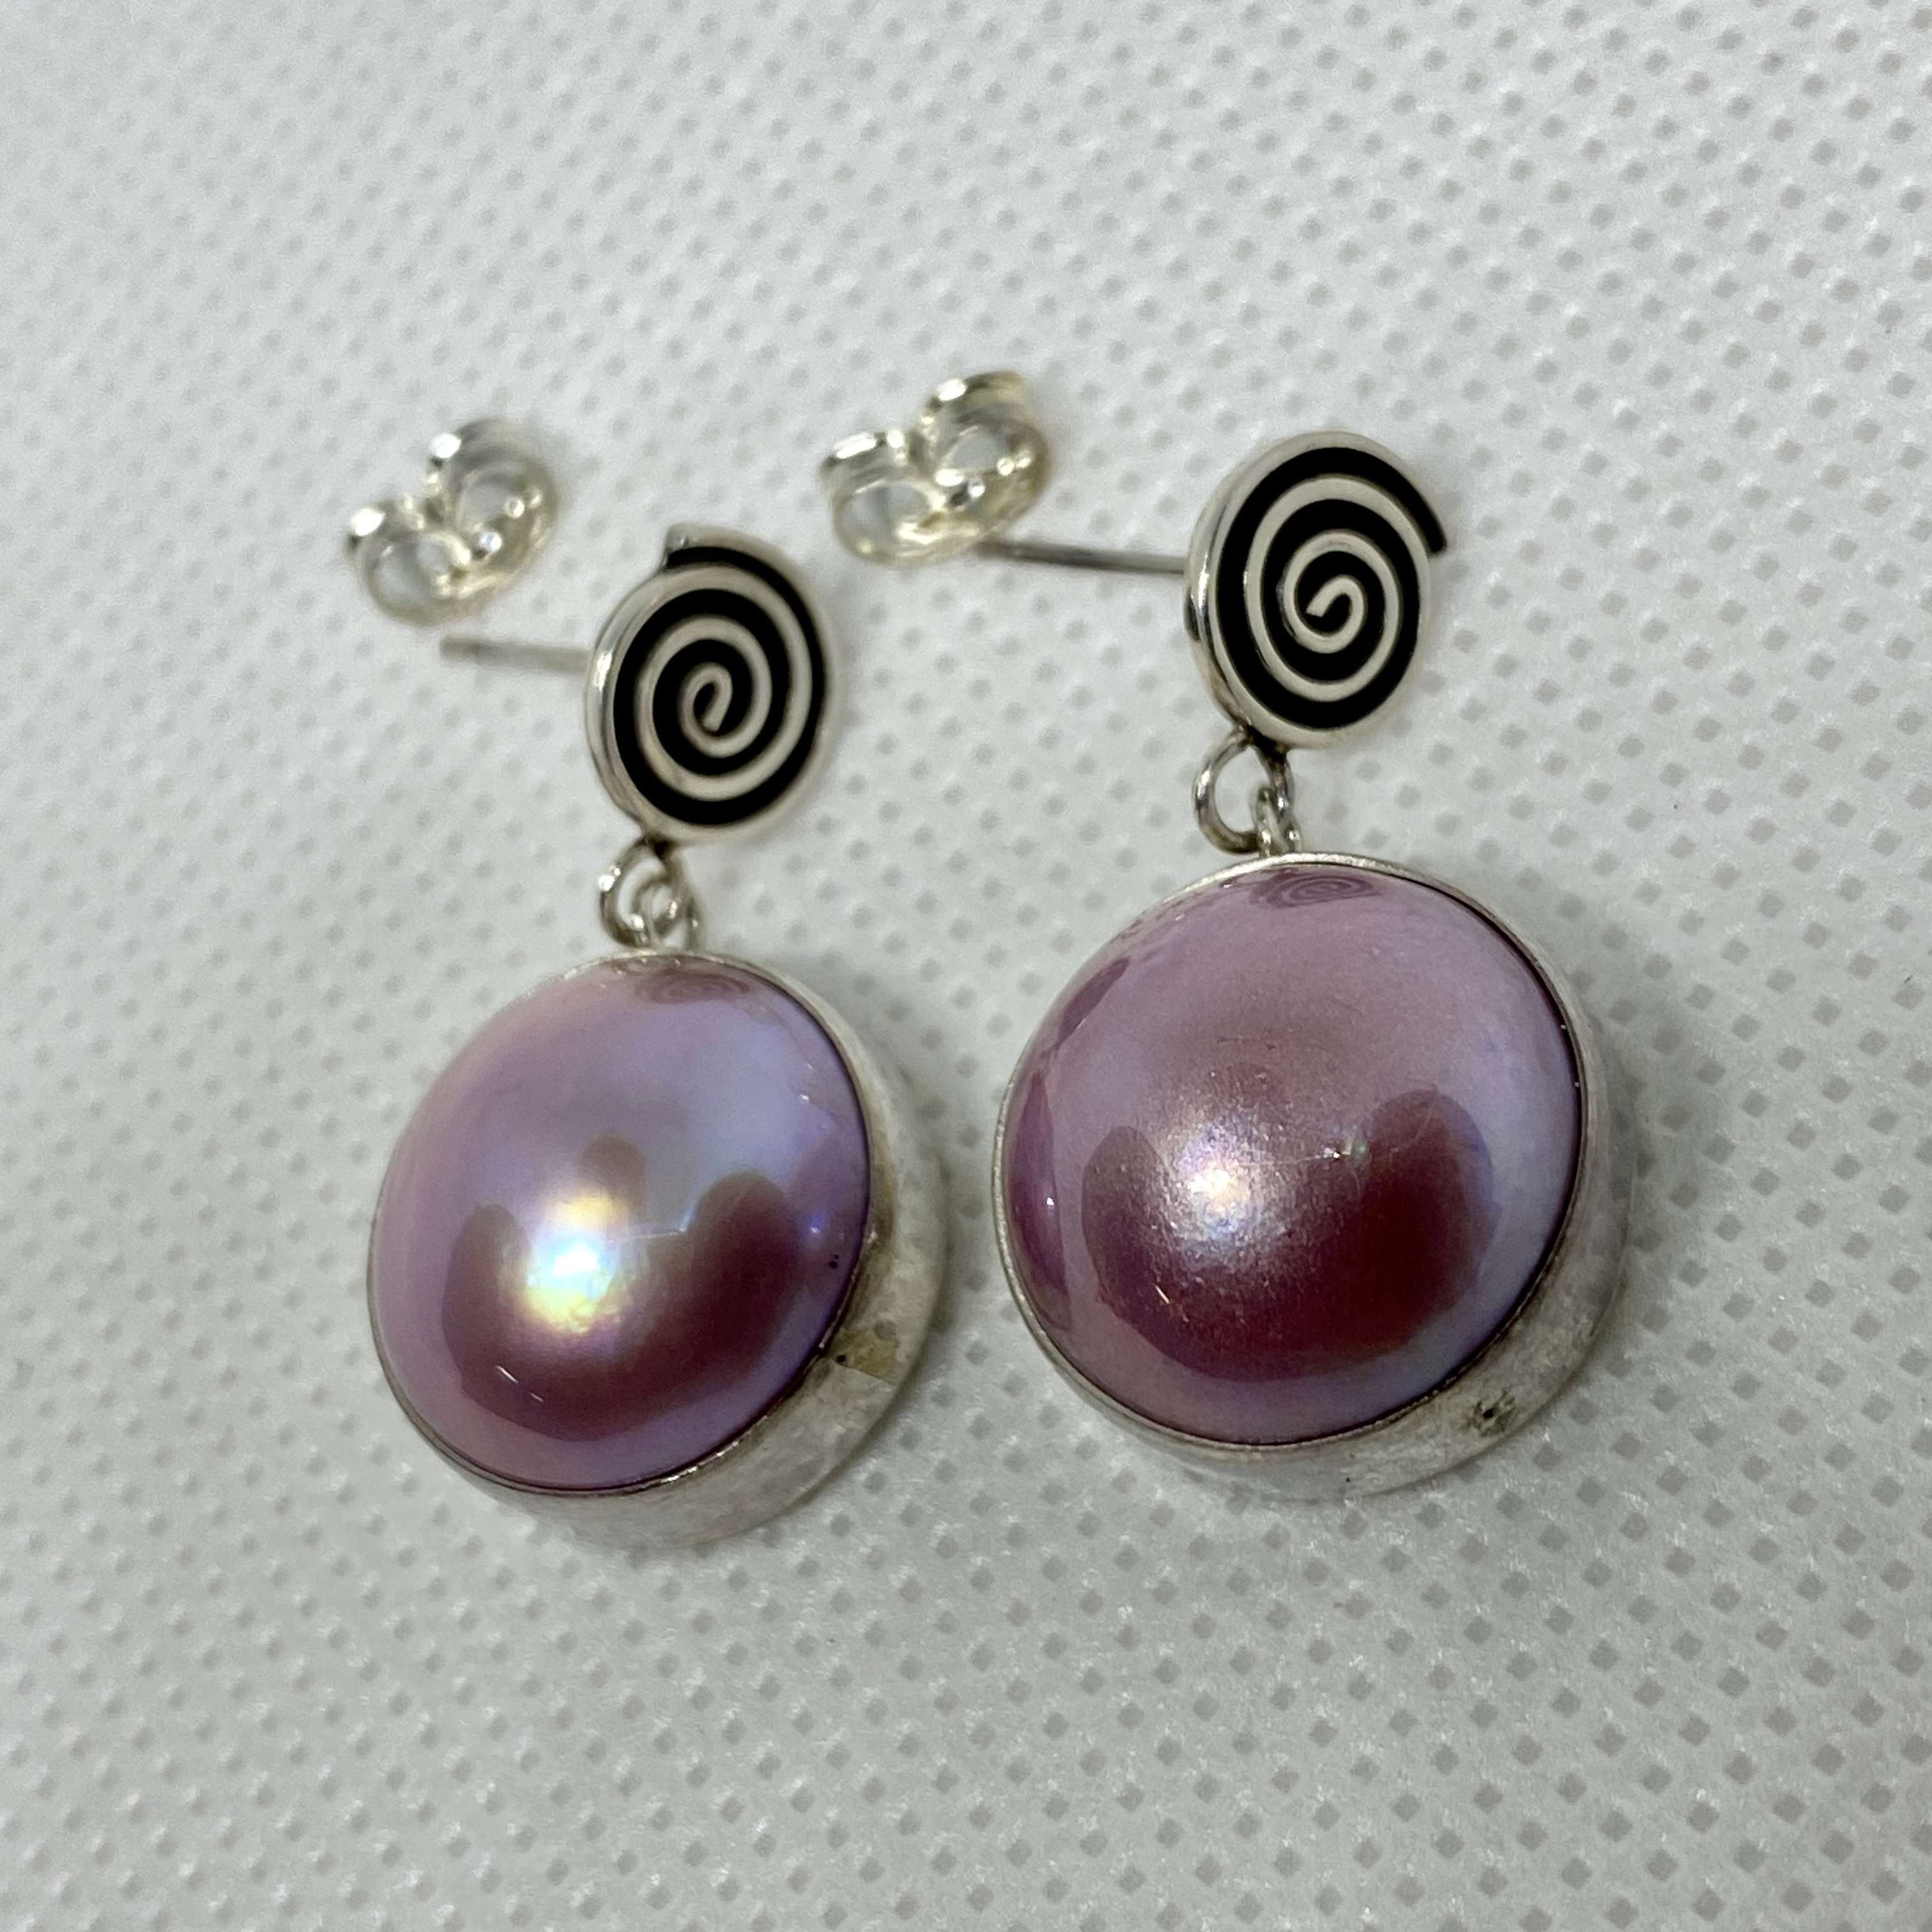 BALI SILVER EARRINGS WITH PINK MABE PEARL